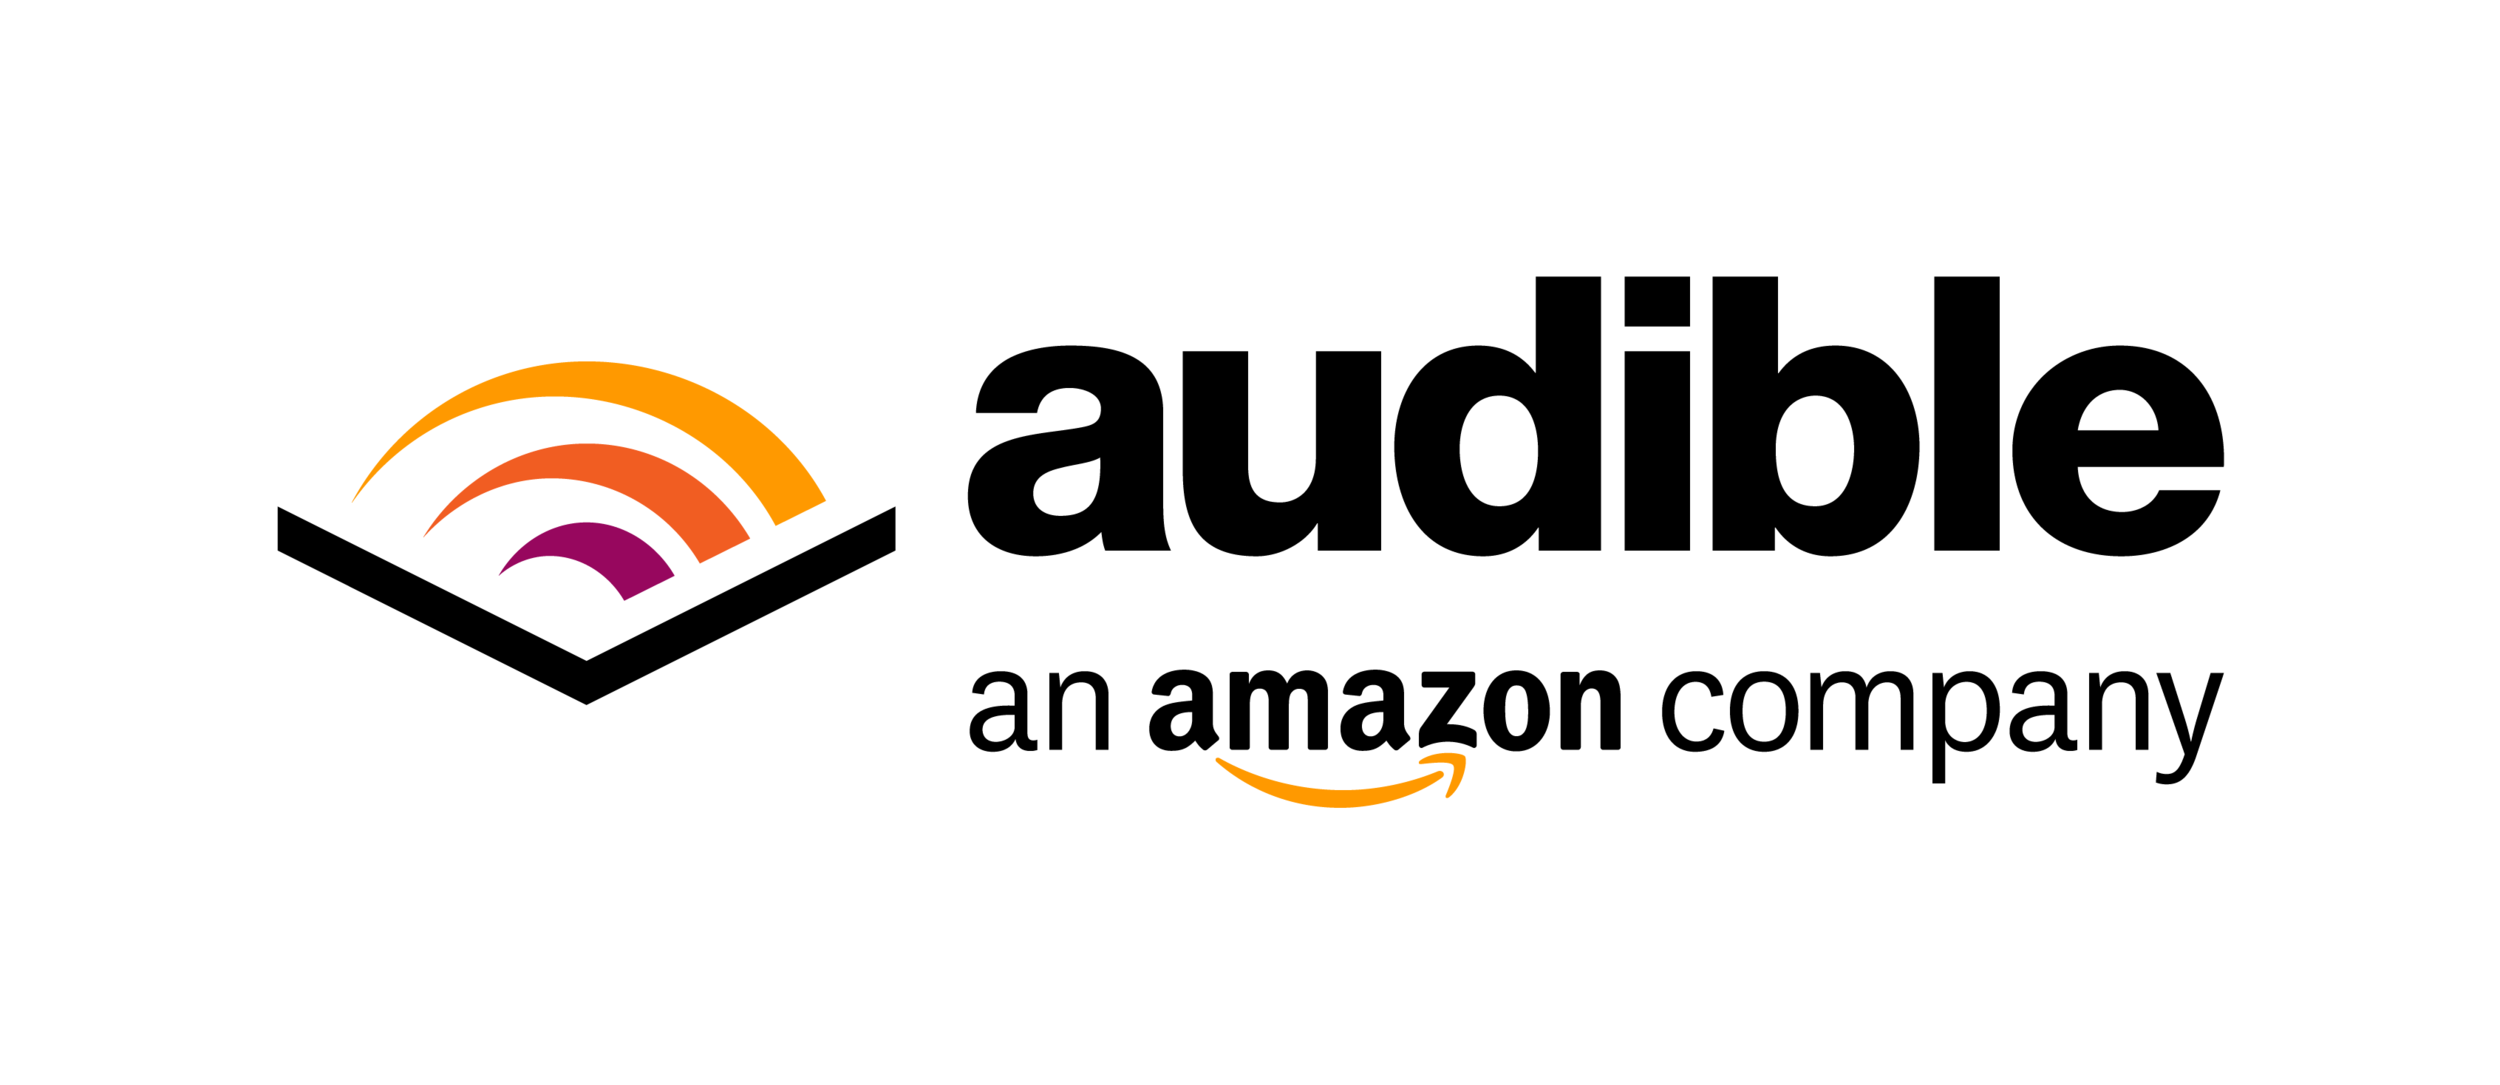 Audio books are a great way for remote workers to learn on the go.